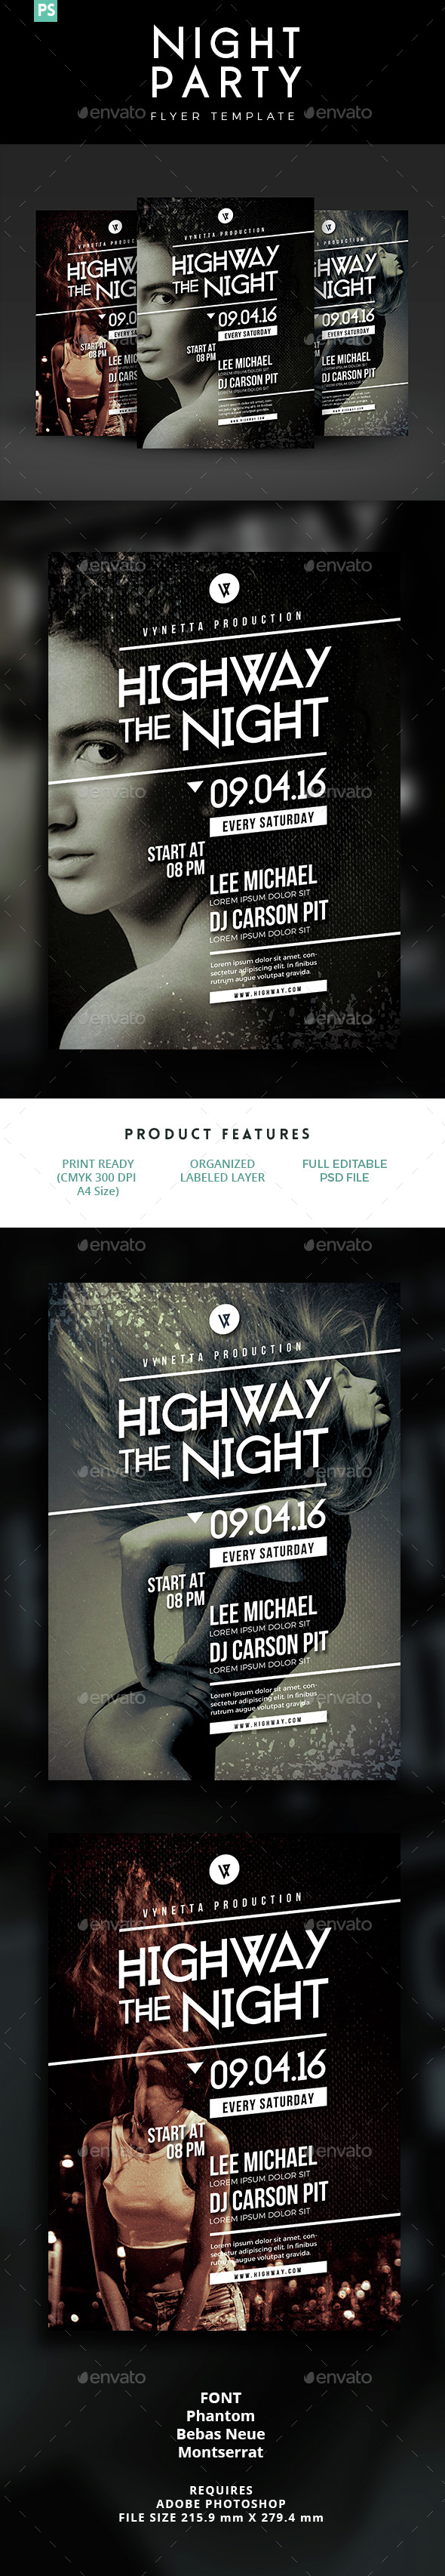 Night Party Flyer / Poster - Clubs & Parties Events